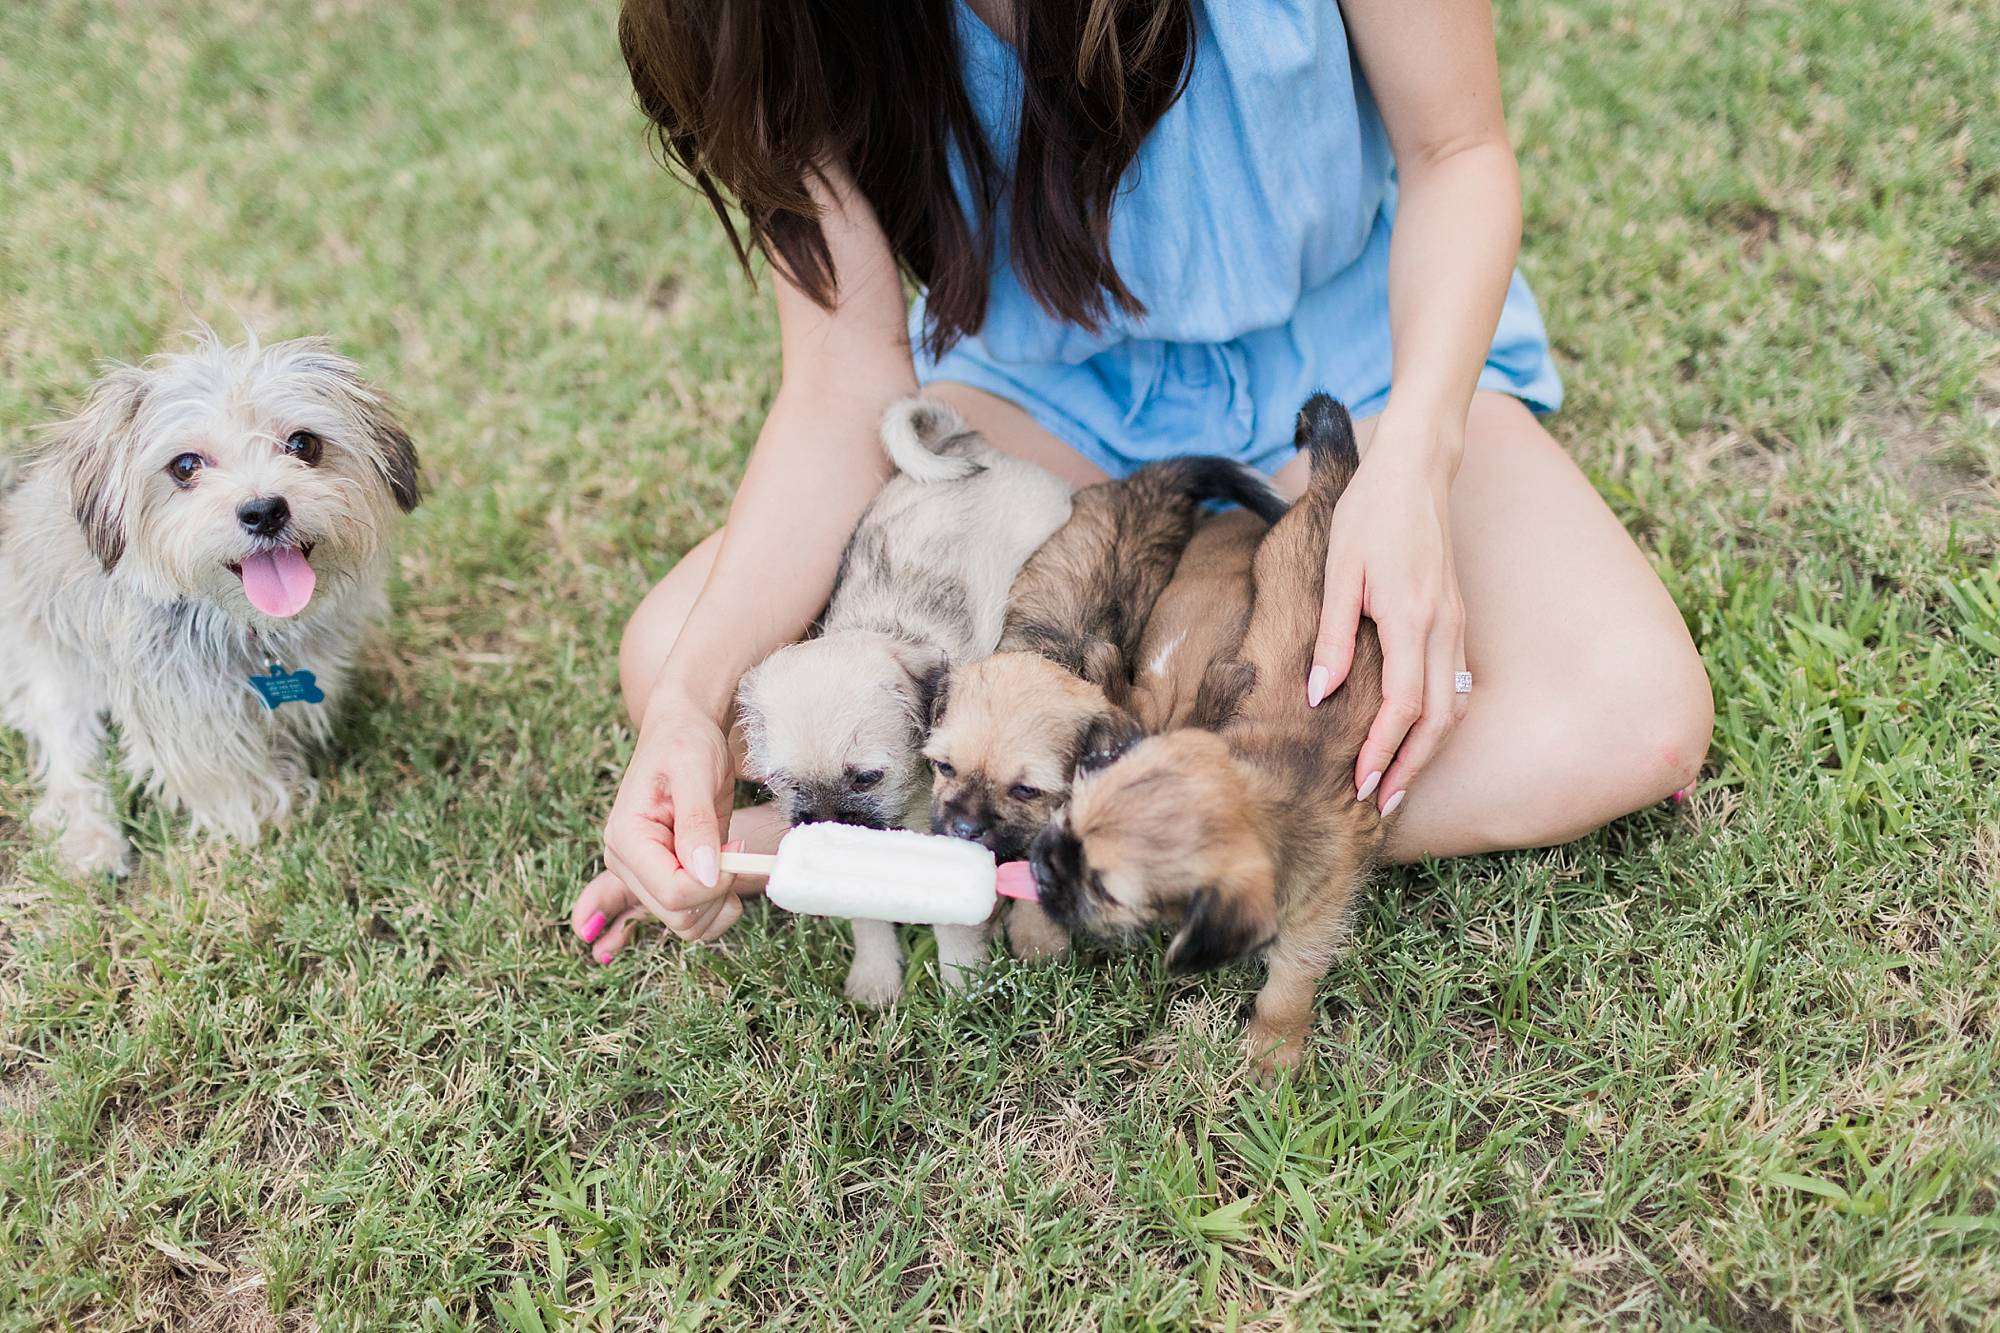 Puppy photoshoot, five little pup dogs in the backyard licking a popsicle held by Phoenix lifestyle blogger Diana Elizabeth